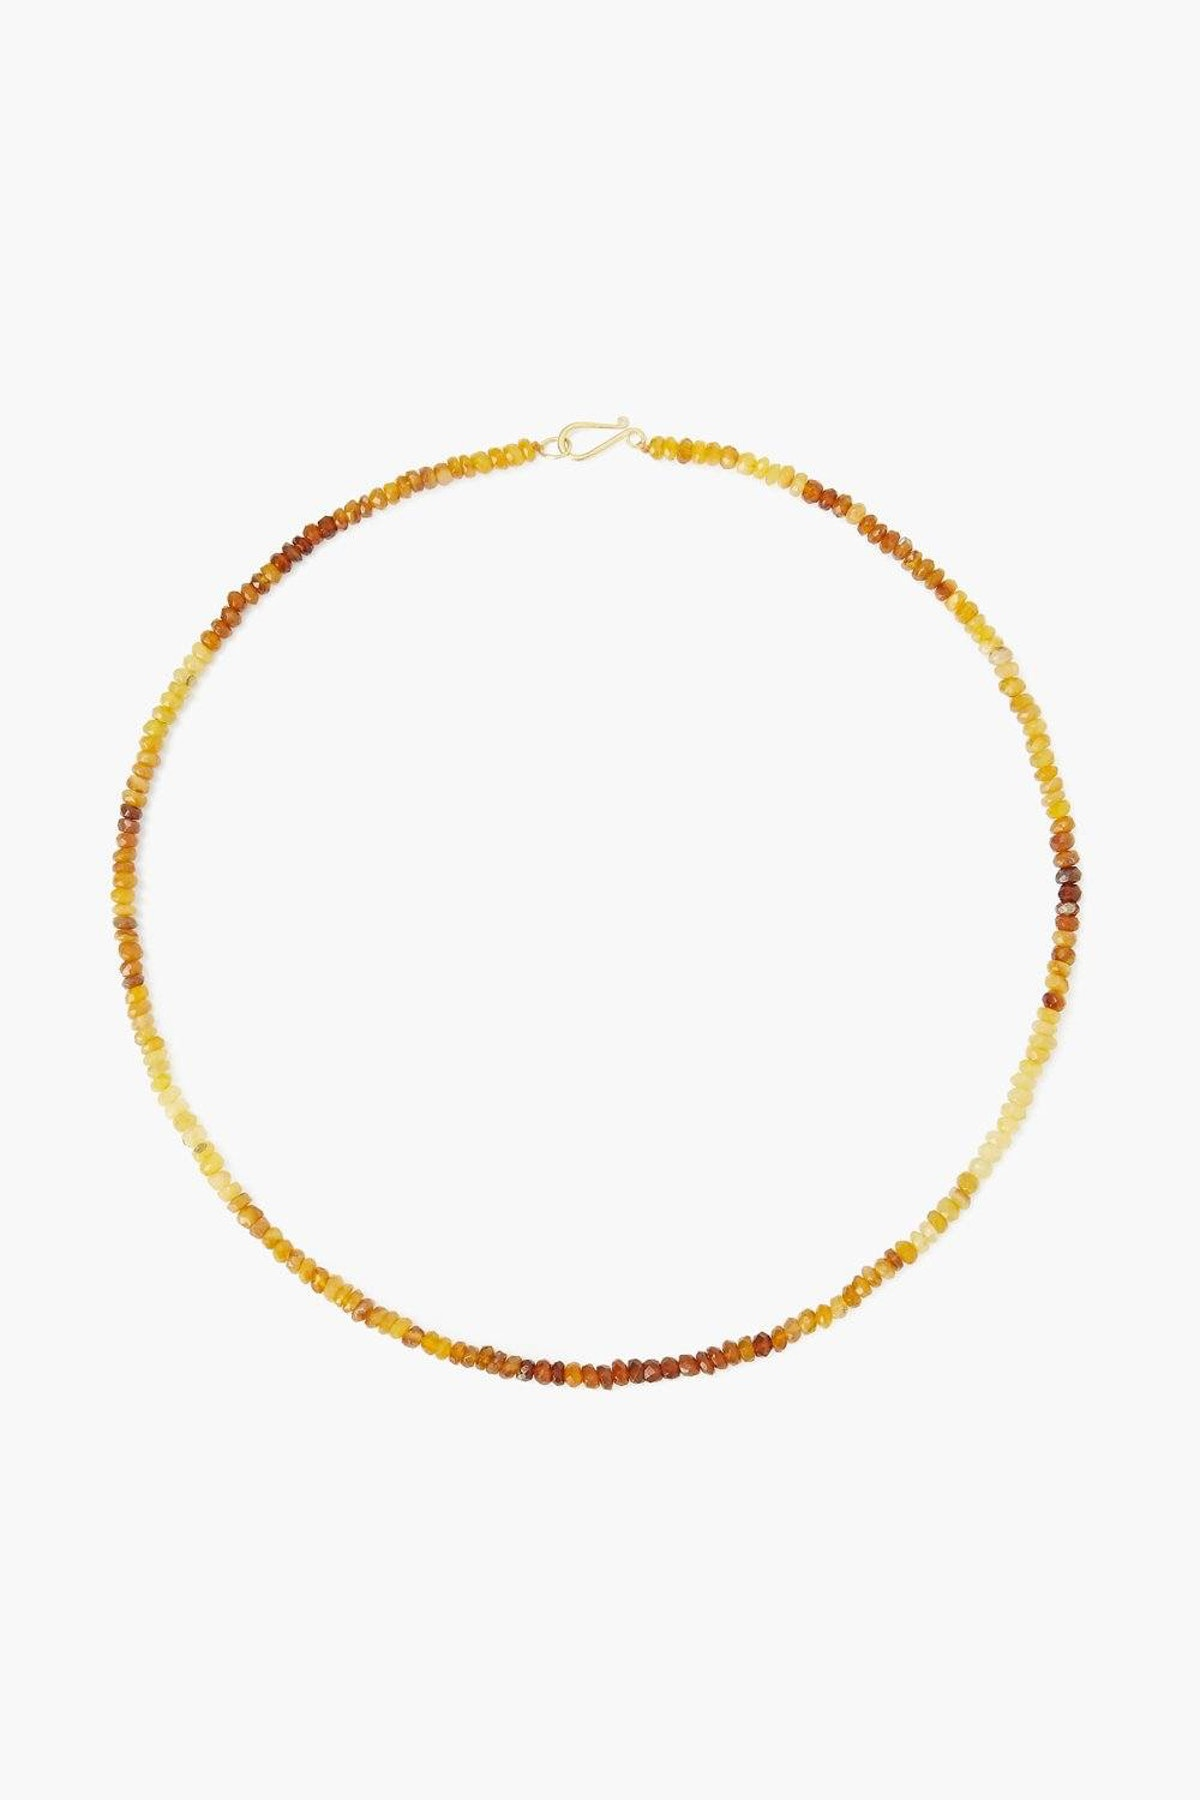 14k African Yellow Opal Necklace